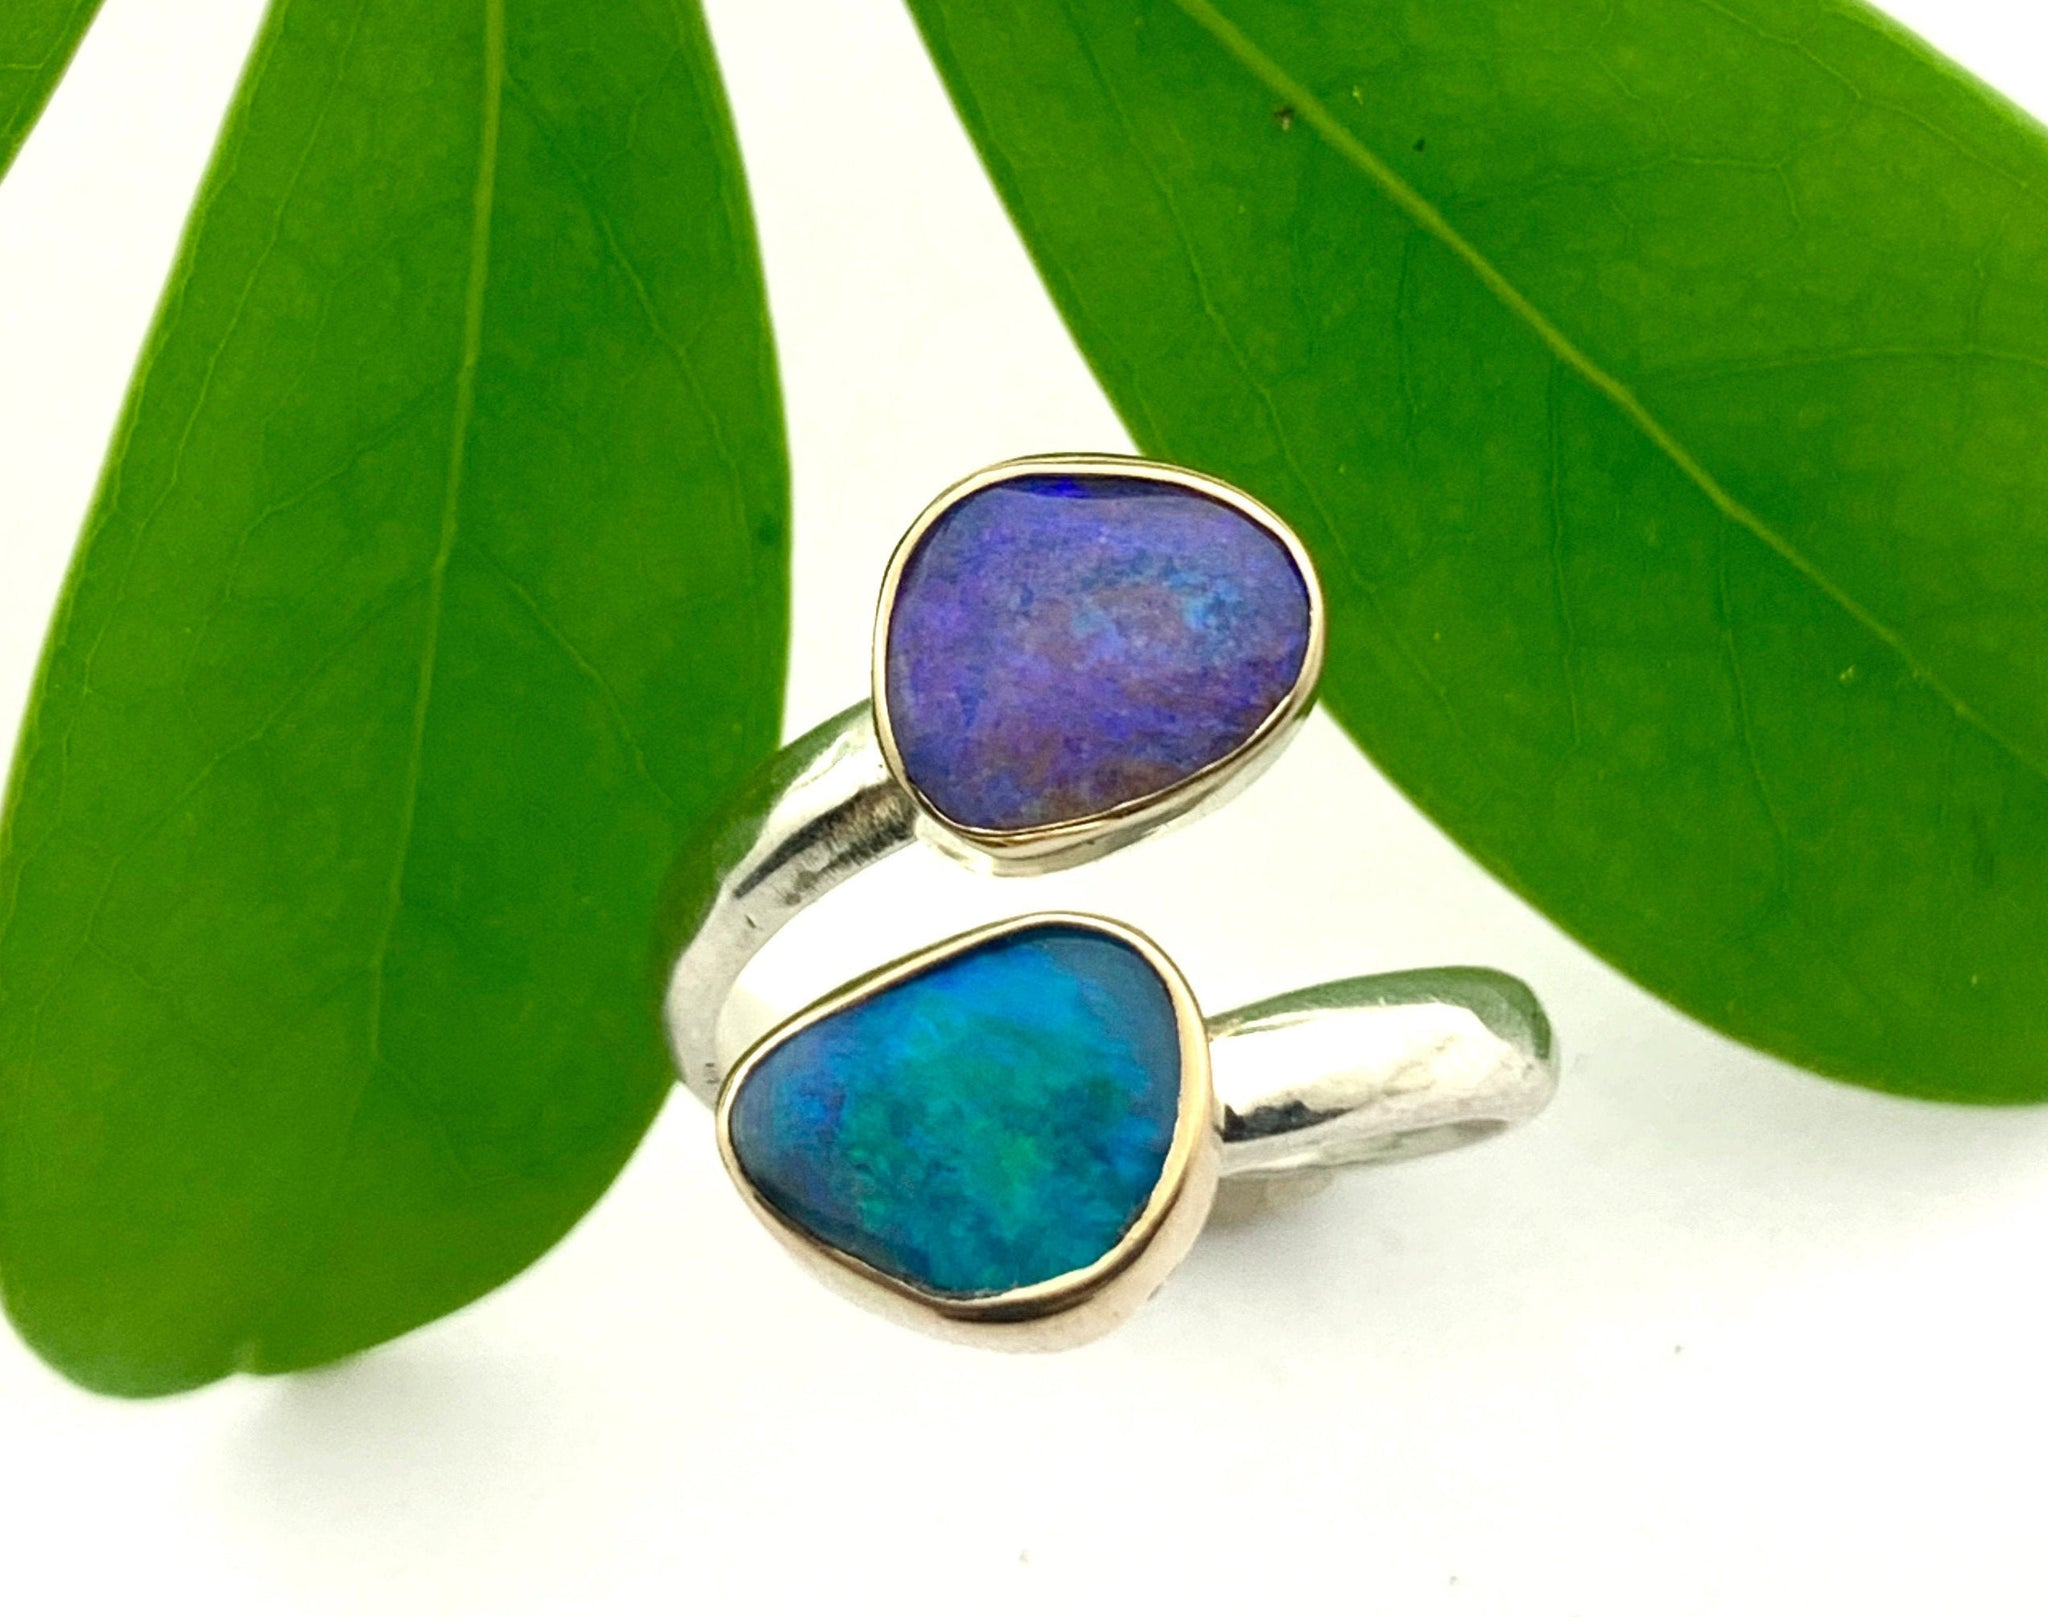 Double Australian Opal Ring, Gold and Silver Opal Ring, Adjustable Opal Ring, Womens October Birthday Gift, Ladies Adjustable Opal Ring